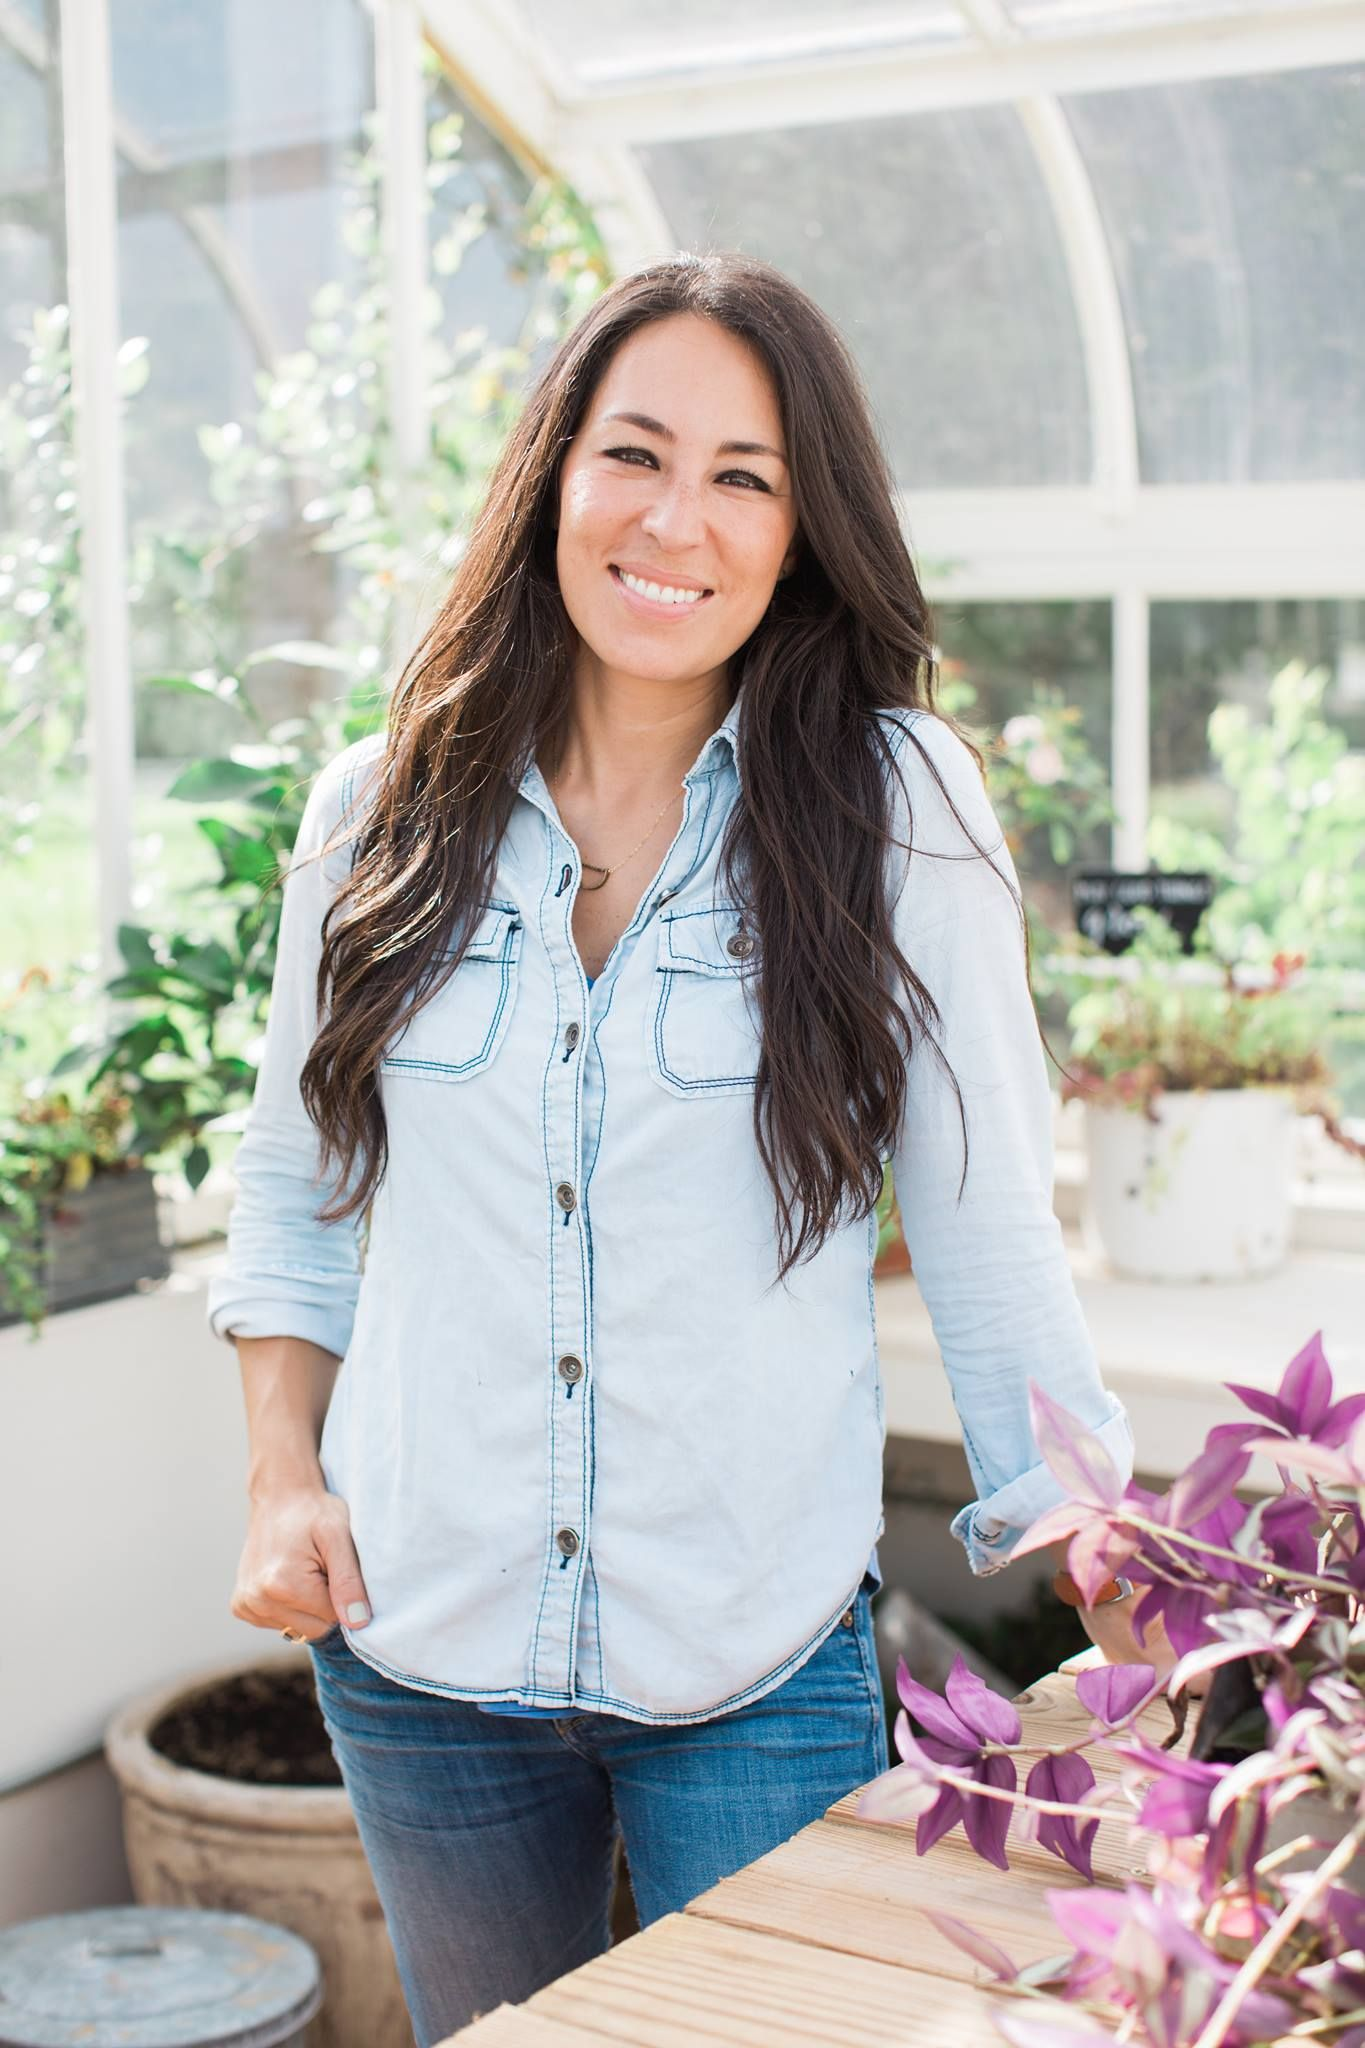 Joanna gaines of hgtv fixer upper admire her creativity for Where is joanna gaines originally from